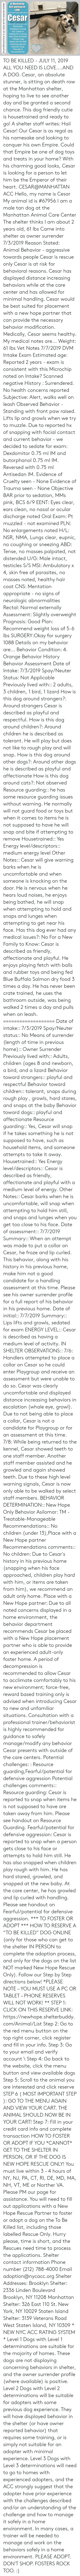 Cats, Children, and Click: At Manhattan  ACC waiting for  LOVE  Cesar  67956-2 years old, 61 lbs  Absolutely  Gorgeous young  boy Cesar is  looking for a loving  new home & family  - Please help  share him for that  amazing second  chance! (Dog  Friendly &  Housetrained)  Unconditional love is as close as the nearest shelter TO BE KILLED - JULY 11, 2019  ALL YOU NEED IS LOVE....AND A DOG. Cesar, an absolute stunner, is sitting on death row at the Manhattan shelter, hoping to live to see another day and be granted a second chance. This dog friendly cutie is housetrained and ready to go! A shelter staff writes: Hail Cesar! Our Cesar is as regal as his namesake and looking to conquer his own Empire. Could that Empire be one of dog toys and treats in your home? With his charming good looks, Cesar is looking for a person to let him be the Emperor of their heart.  CESAR@MANHATTAN ACC Hello, my name is Cesar My animal id is #67956 I am a male tan dog at the  Manhattan Animal Care Center The shelter thinks I am about 2 years old, 61 lbs Came into shelter as owner surrender 7/3/2019 Reason Stated: Animal Behavior - aggressive towards people Cesar is rescue only   Cesar is at risk for behavioral reasons. Cesar has displayed distance increasing behaviors while at the care center and has allowed for minimal handling. Cesar would be best suited for placement with a new hope partner that can provide the necessary behavior modification. Medically, Cesar seems healthy.  My medical notes are... Weight: 61 lbs Vet Notes 7/7/2019 DVM Intake Exam Estimated age: Reported 2 years - exam is consistent with this Microchip noted on Intake? Scanned negative History : Surrendered. No health concerns reported Subjective: Alert, walks well on leash Observed Behavior - Standing with front paw raised. Lifts lip and growls when we try to muzzle. Due to reported hx of snapping with facial contact and current behavior - we decided to sedate for exam: Dexdomitor 0.75 ml IM and butorphanol 0.75 ml IM.